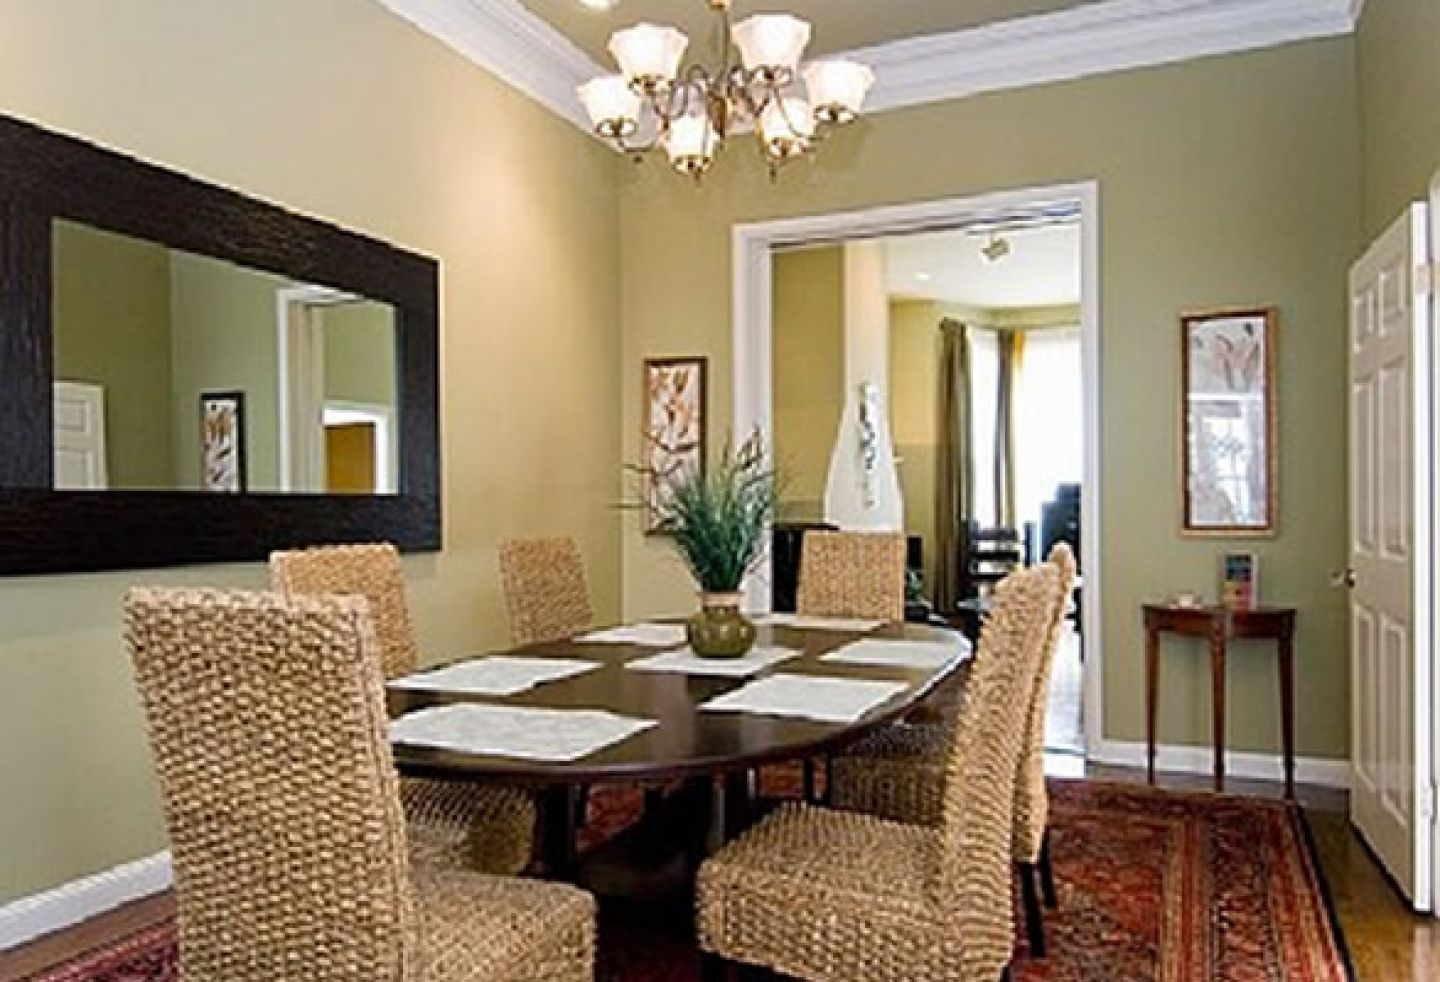 Painting Dining Room great greens green dining roomdining Nice Dining Room Ideas Bathroom Pinterest Furniture Paint Dining Room Decorating Color Ideas